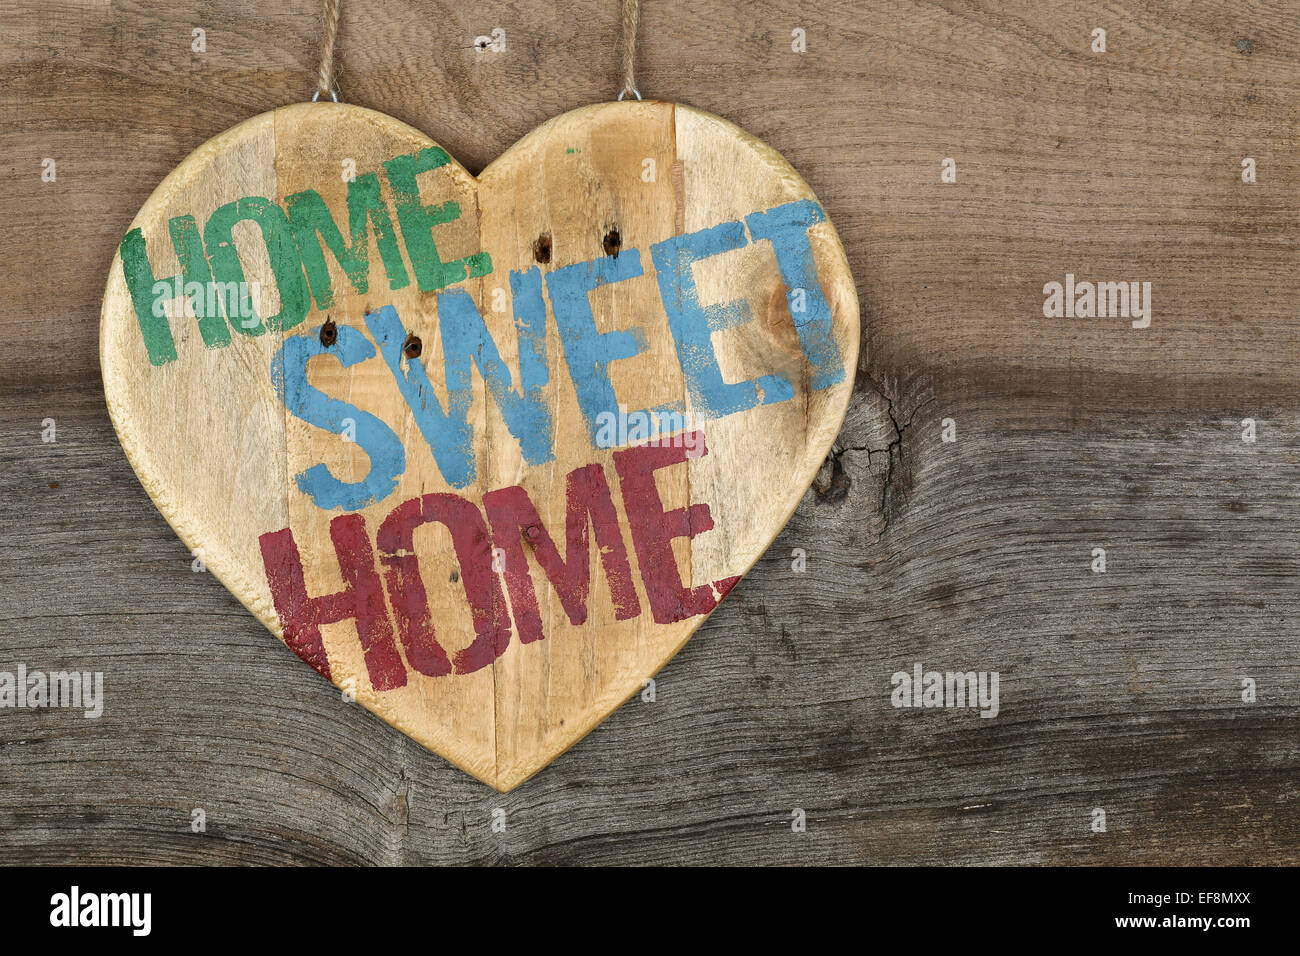 'Home Sweet Home' message wooden heart sign from recycled old palette on rough grey wooden background, copy - Stock Image